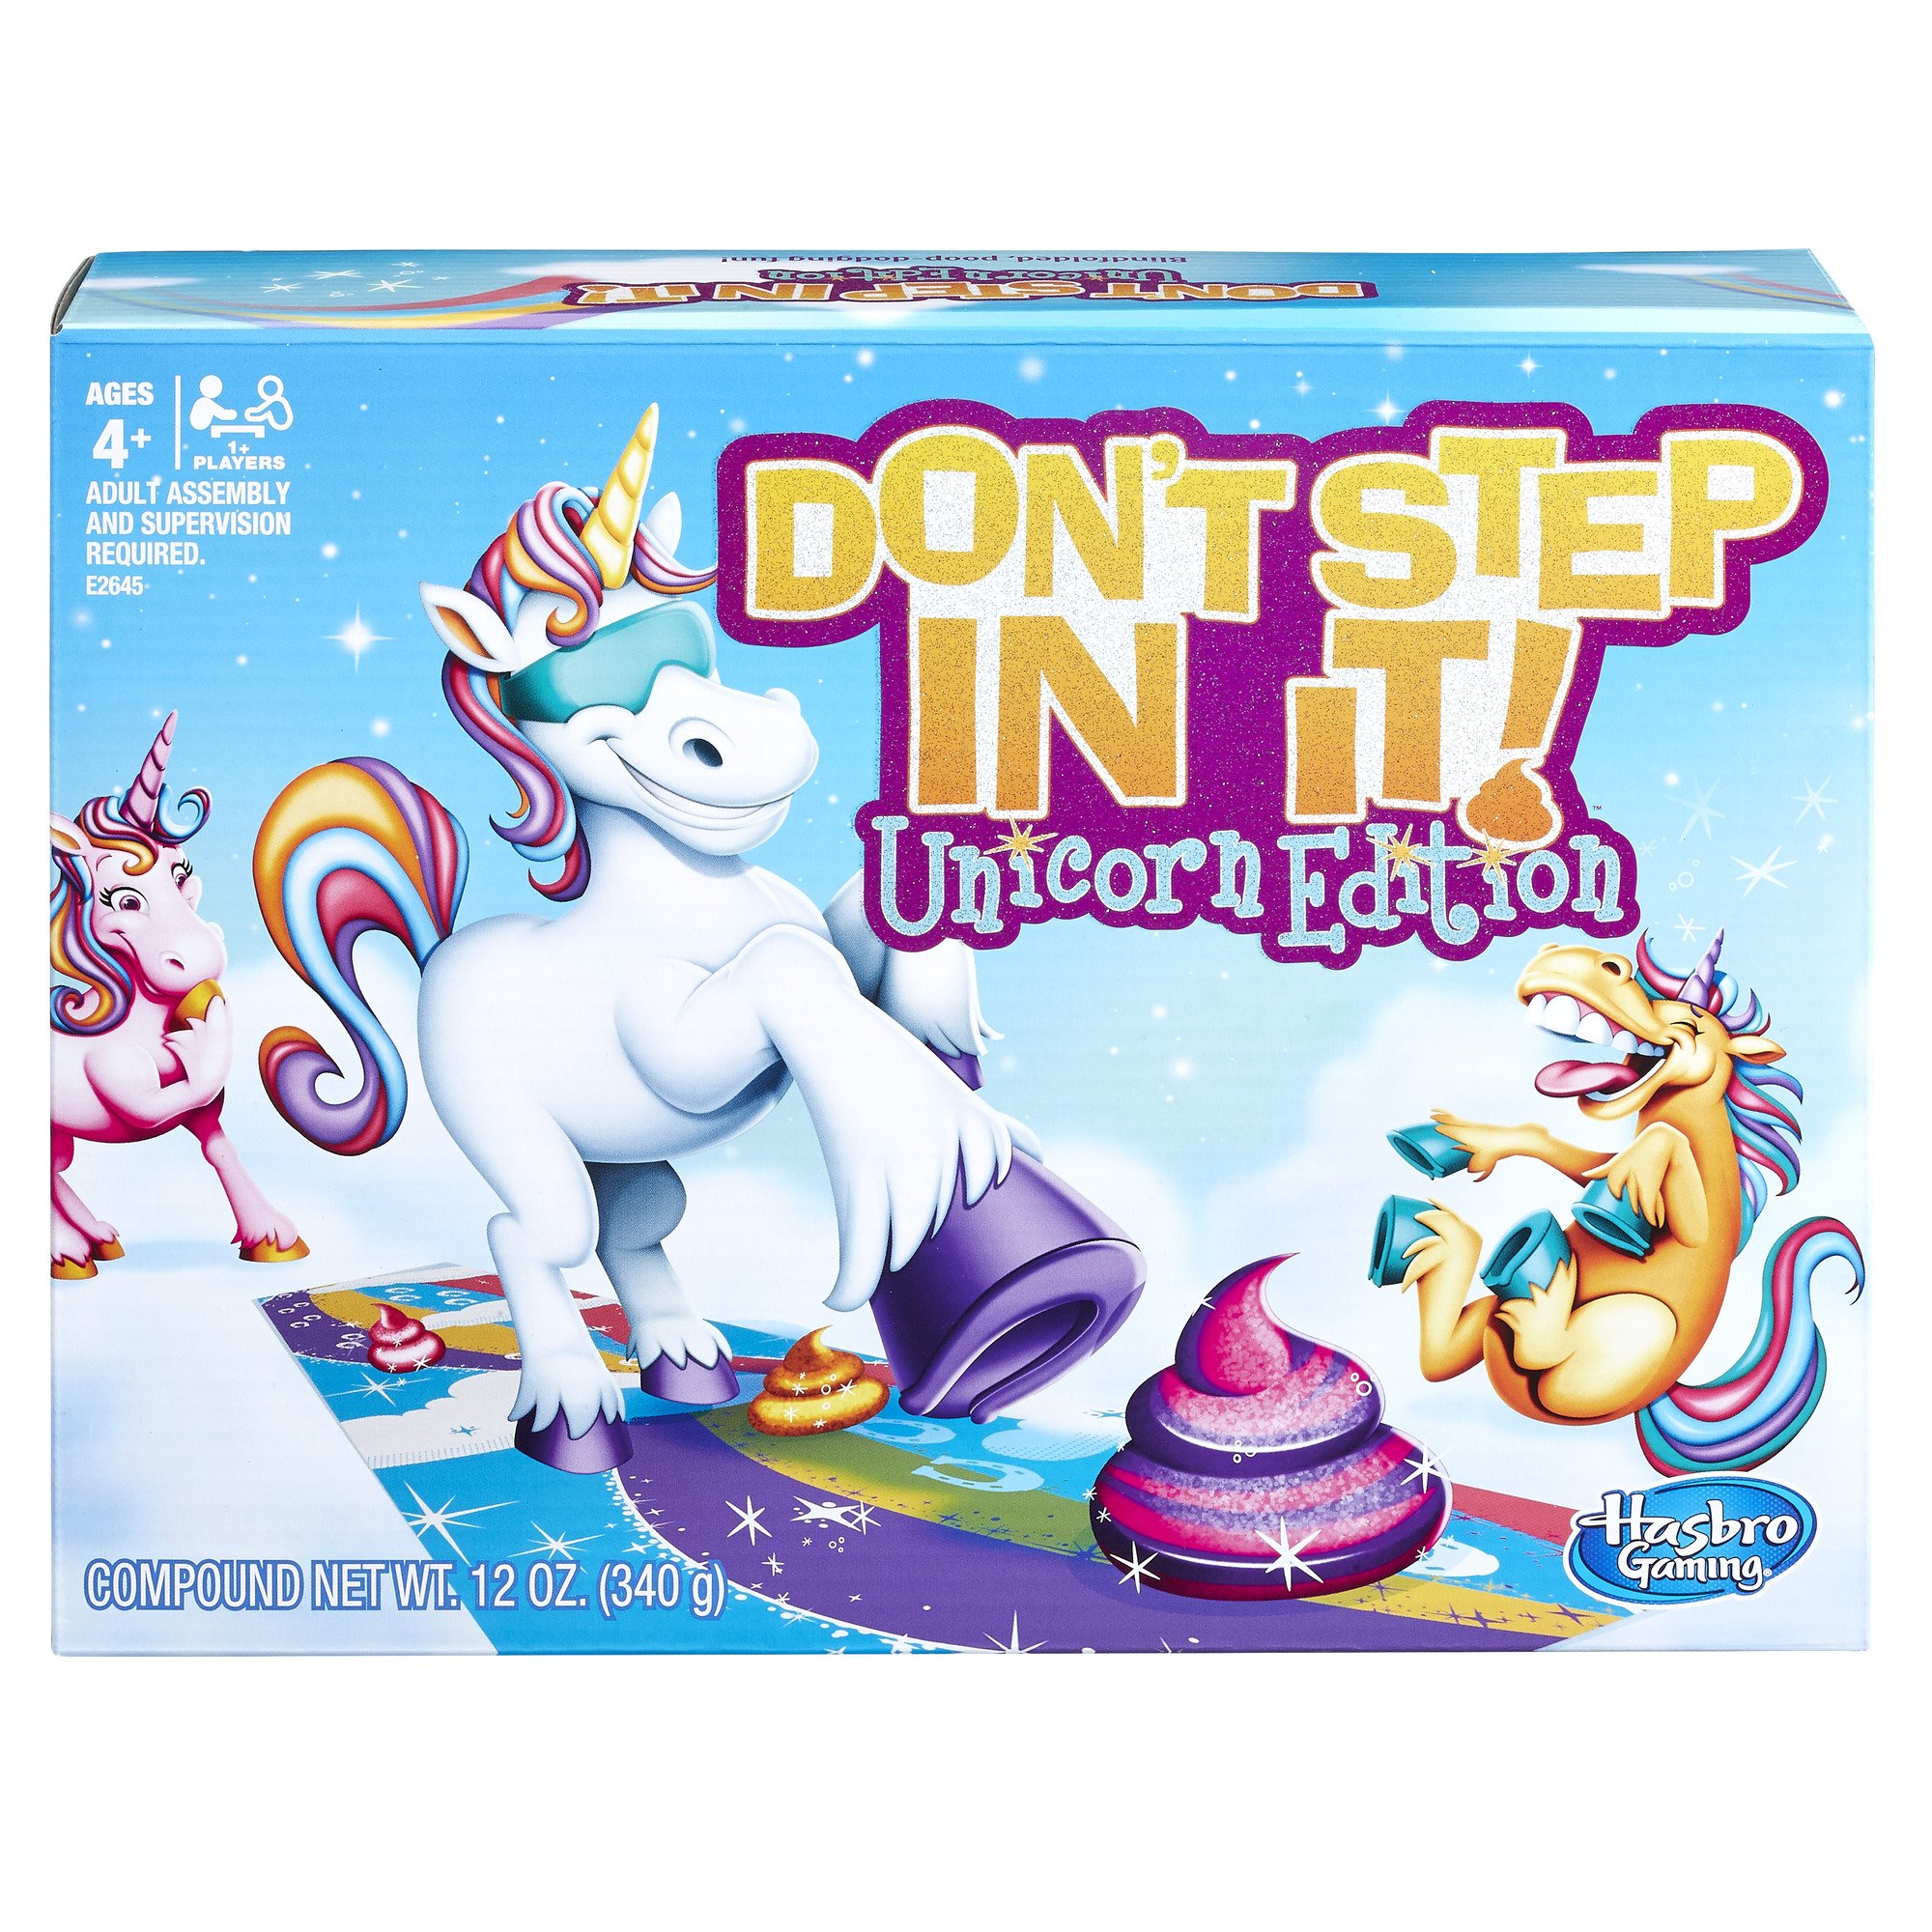 Hasbro Gaming Don't Step In It Game, Unicorn Edition (Amazon Exclusive) by Hasbro Gaming